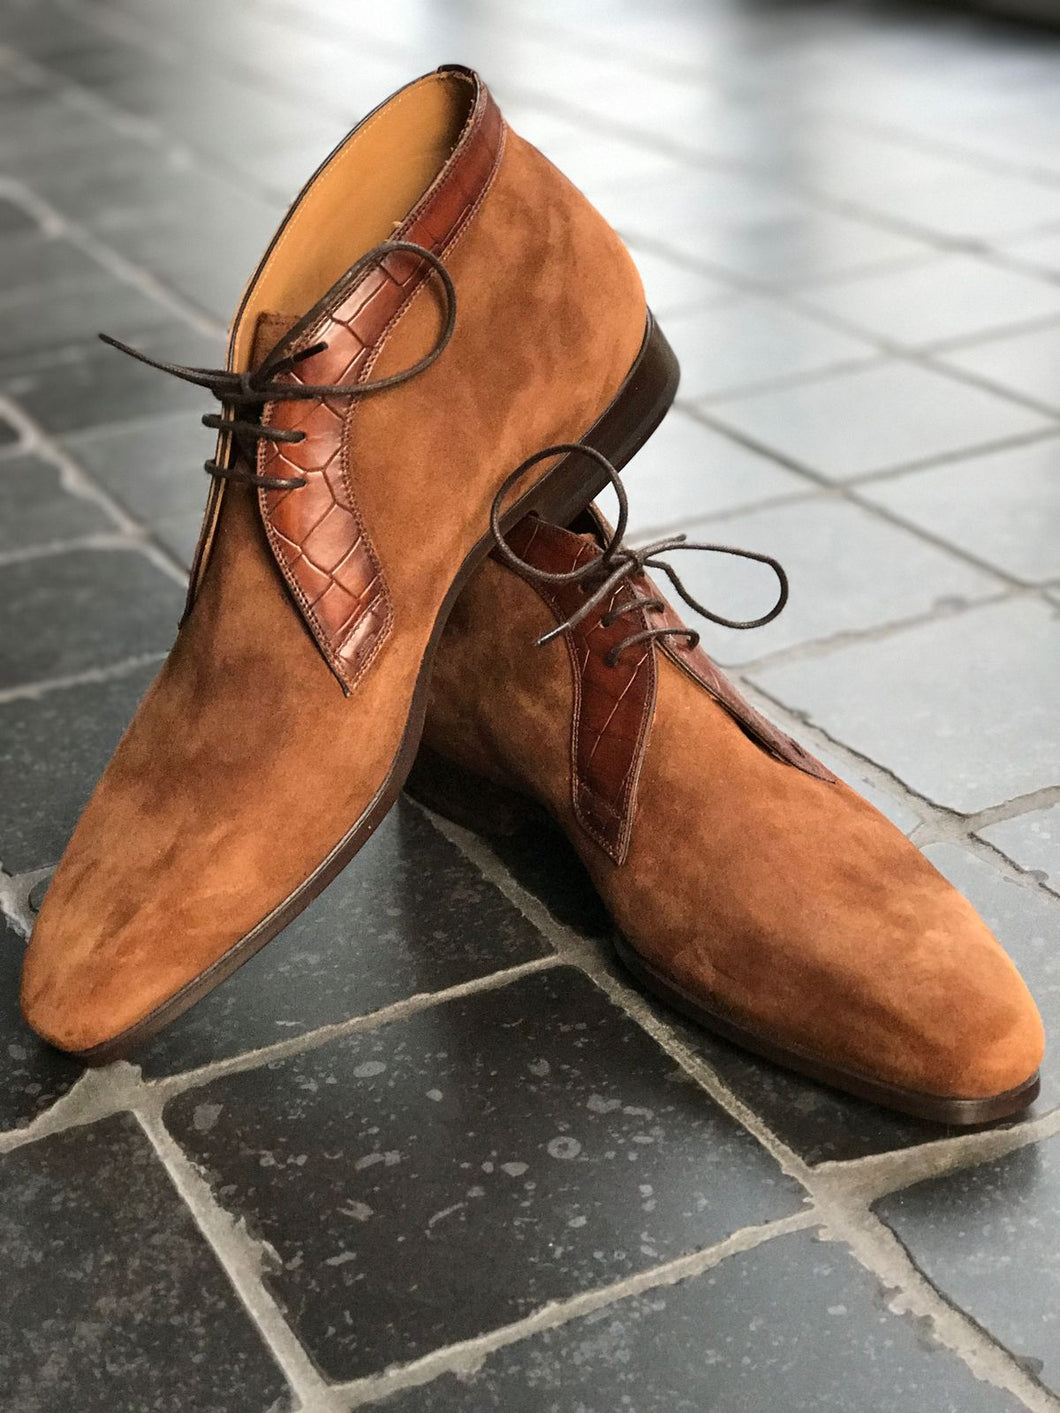 Handmade Men's Brown Leather Suede Chukka Boots, Men Lace Up stylish Dress Boots - theleathersouq